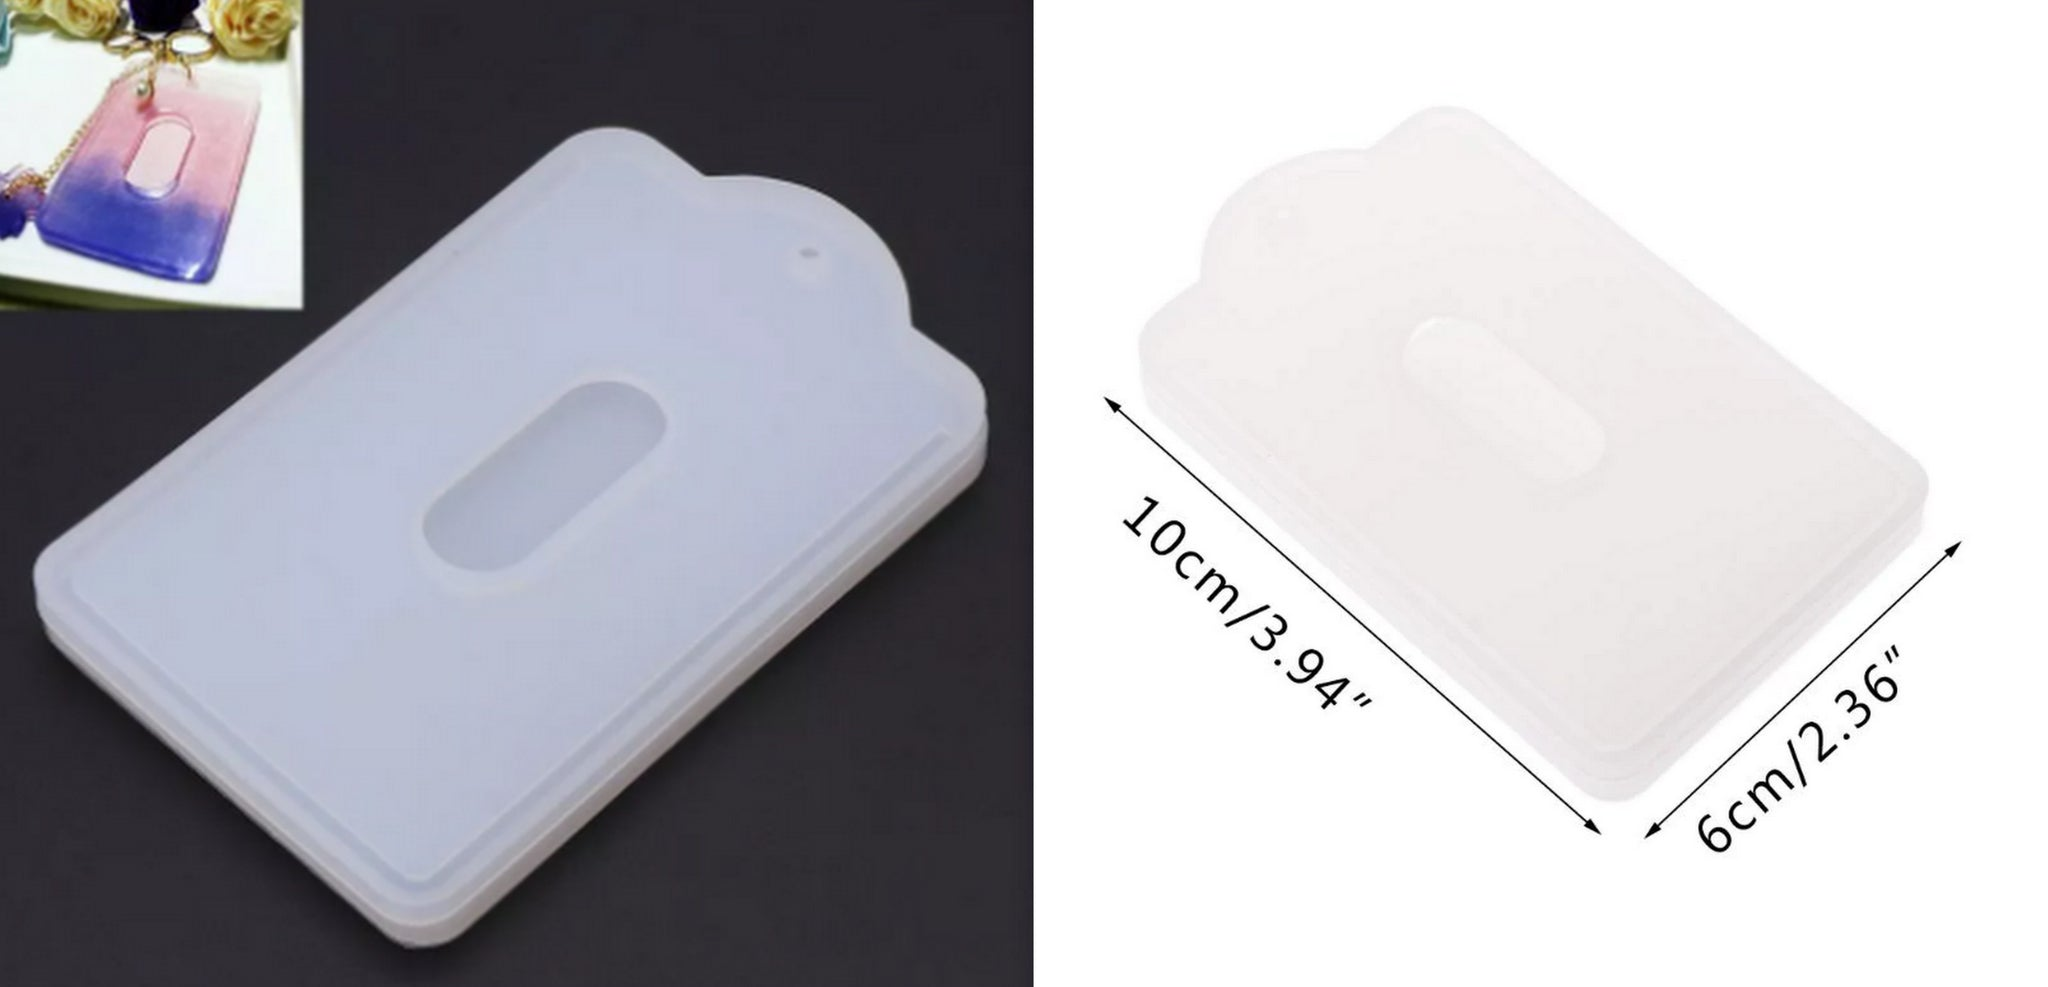 Card Pocket ID Holder Silicone Mold For Making Resin Jewellery